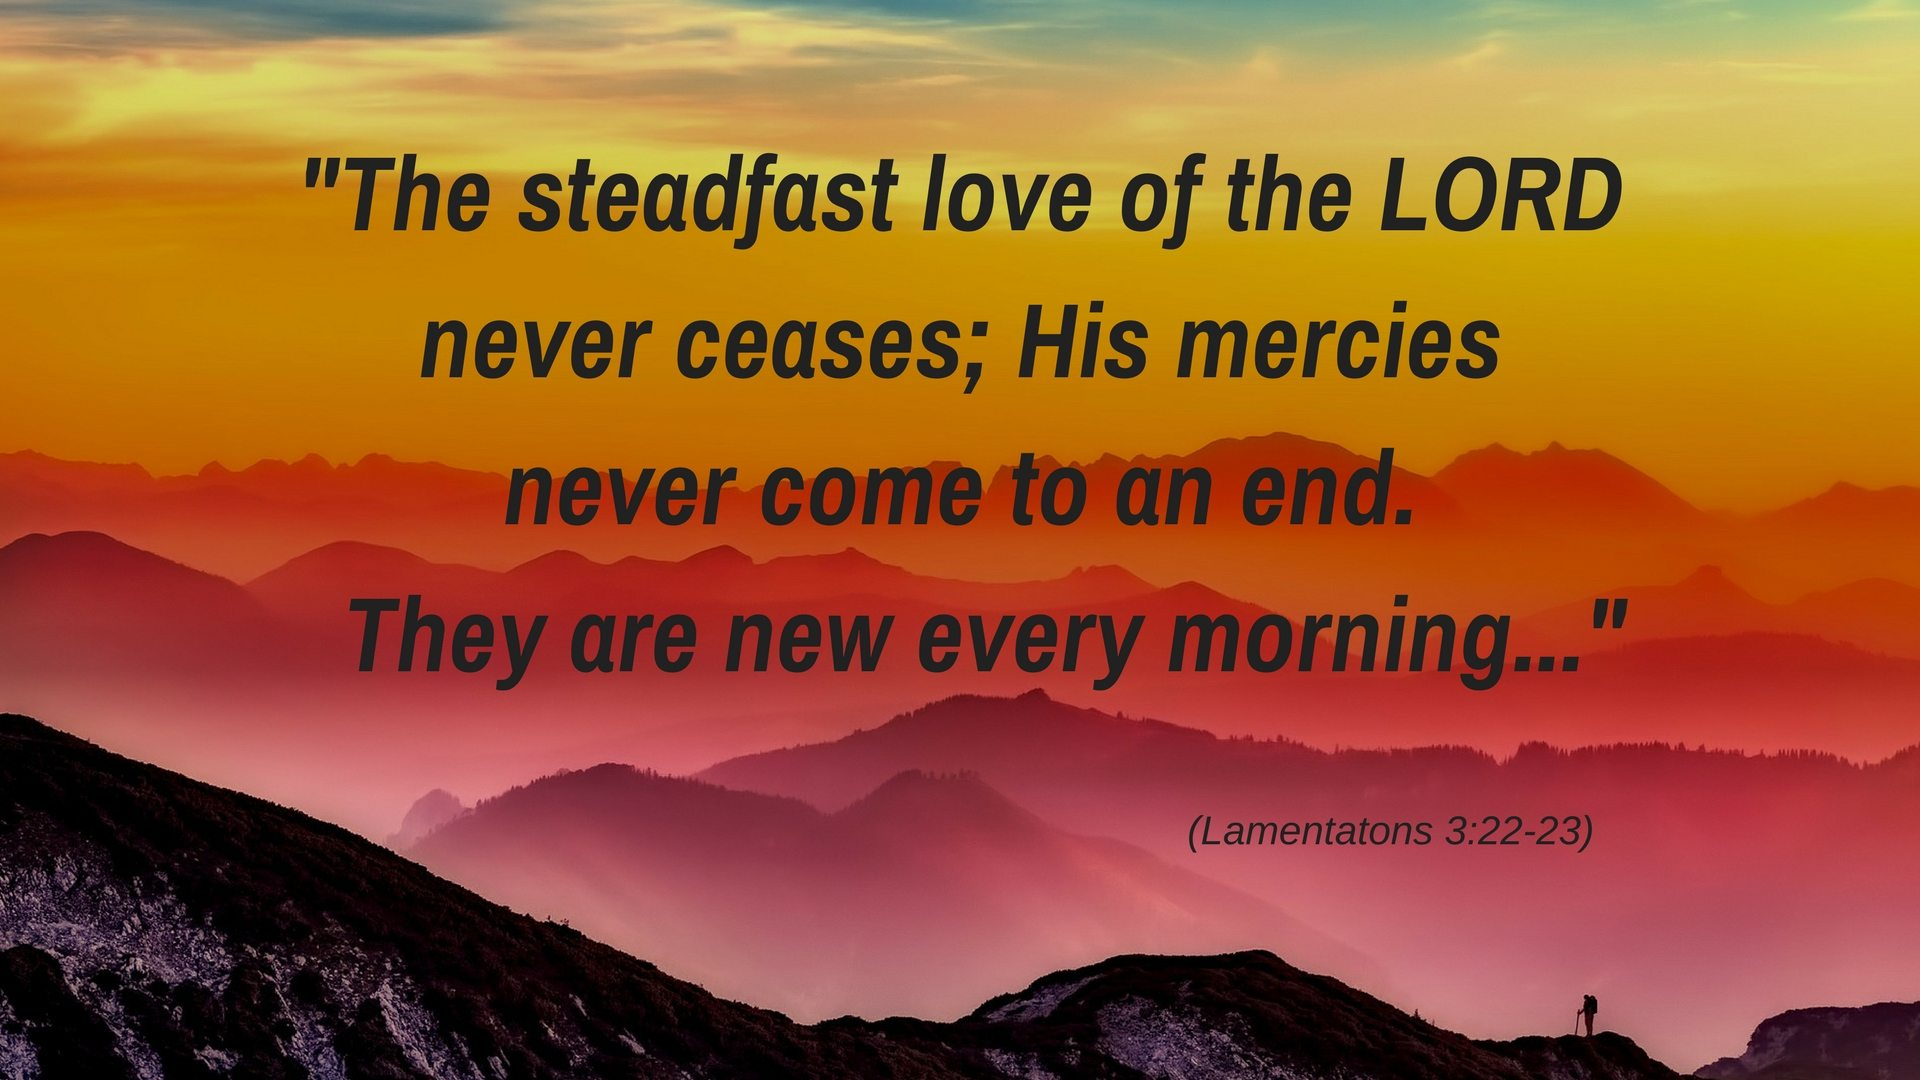 The steadfast love - Pixabay - Canva